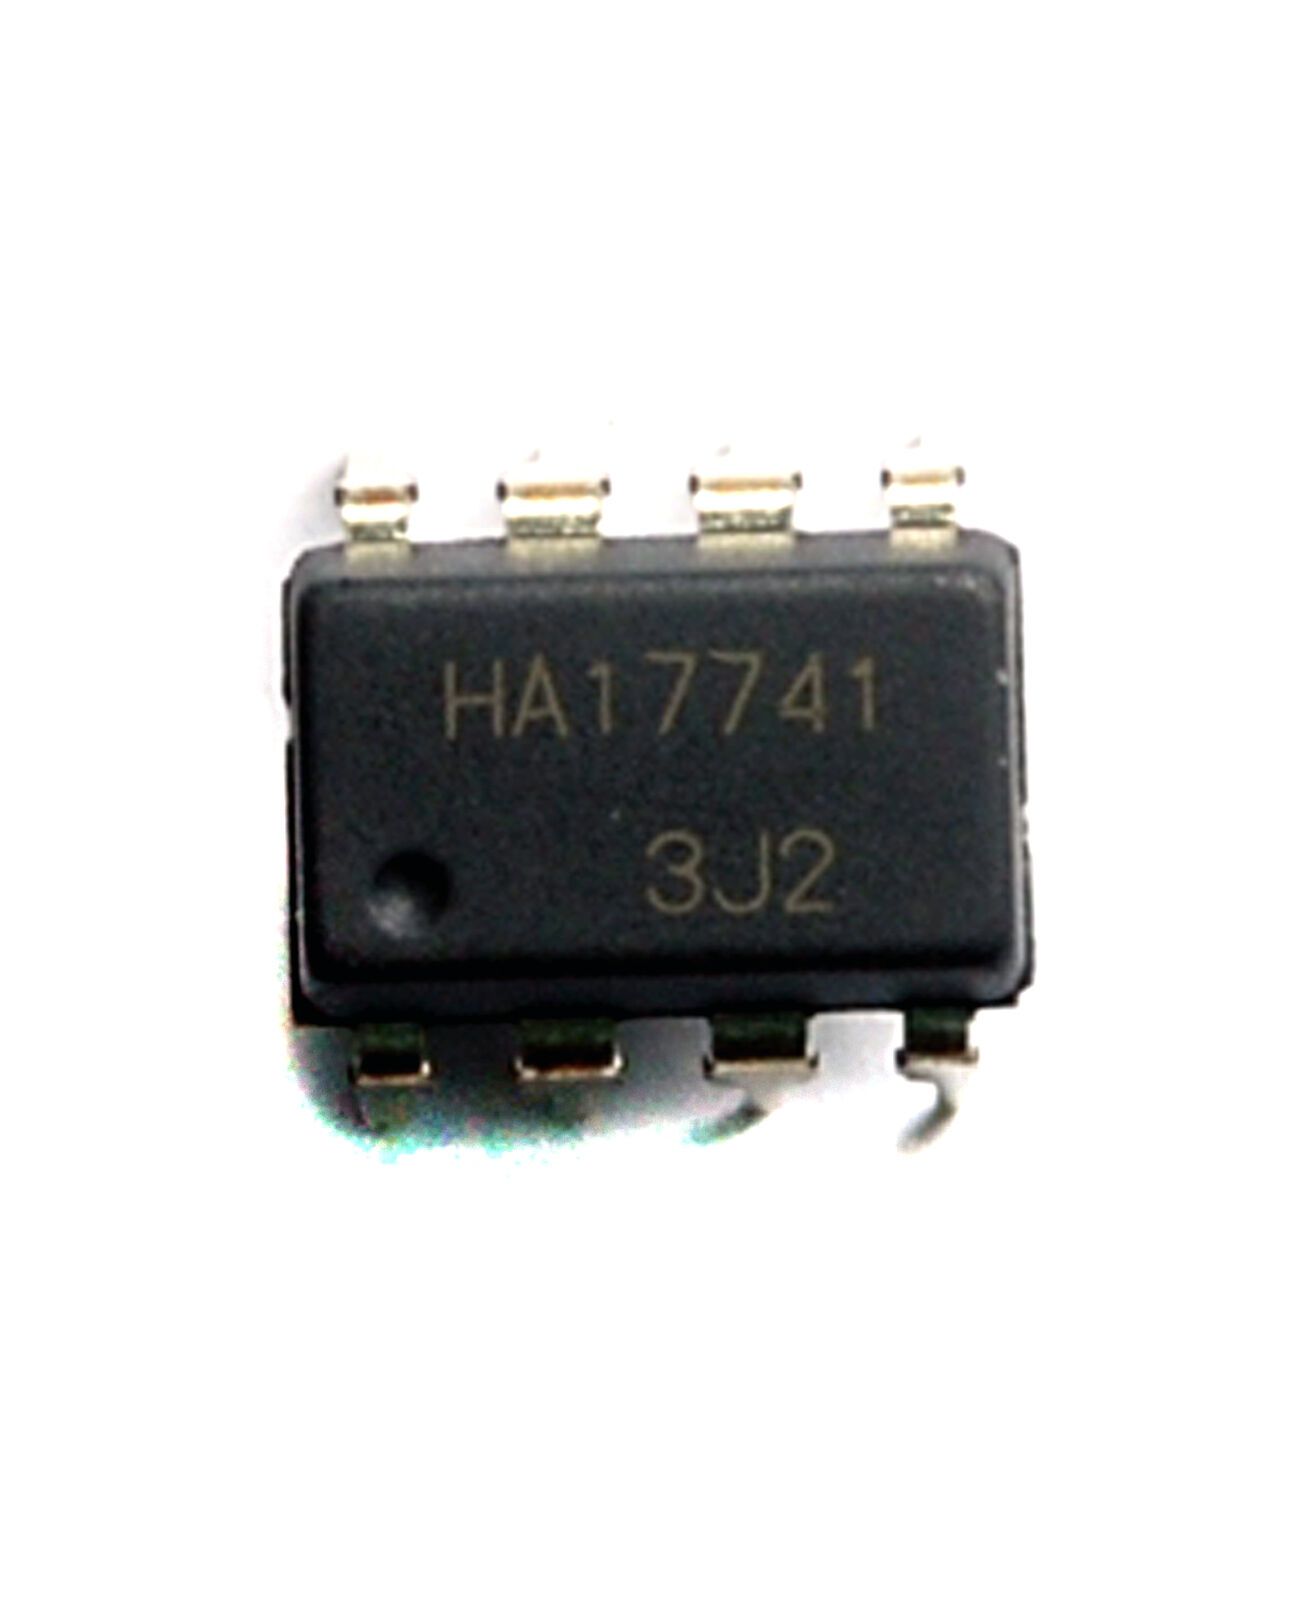 10pc Dip Ic 8p Ha17741 Op Amp Rohs Renesas Lm741 Ua741cp Ua741cn 741 Operational Amplifier Integrated Circuit 1 Of See More